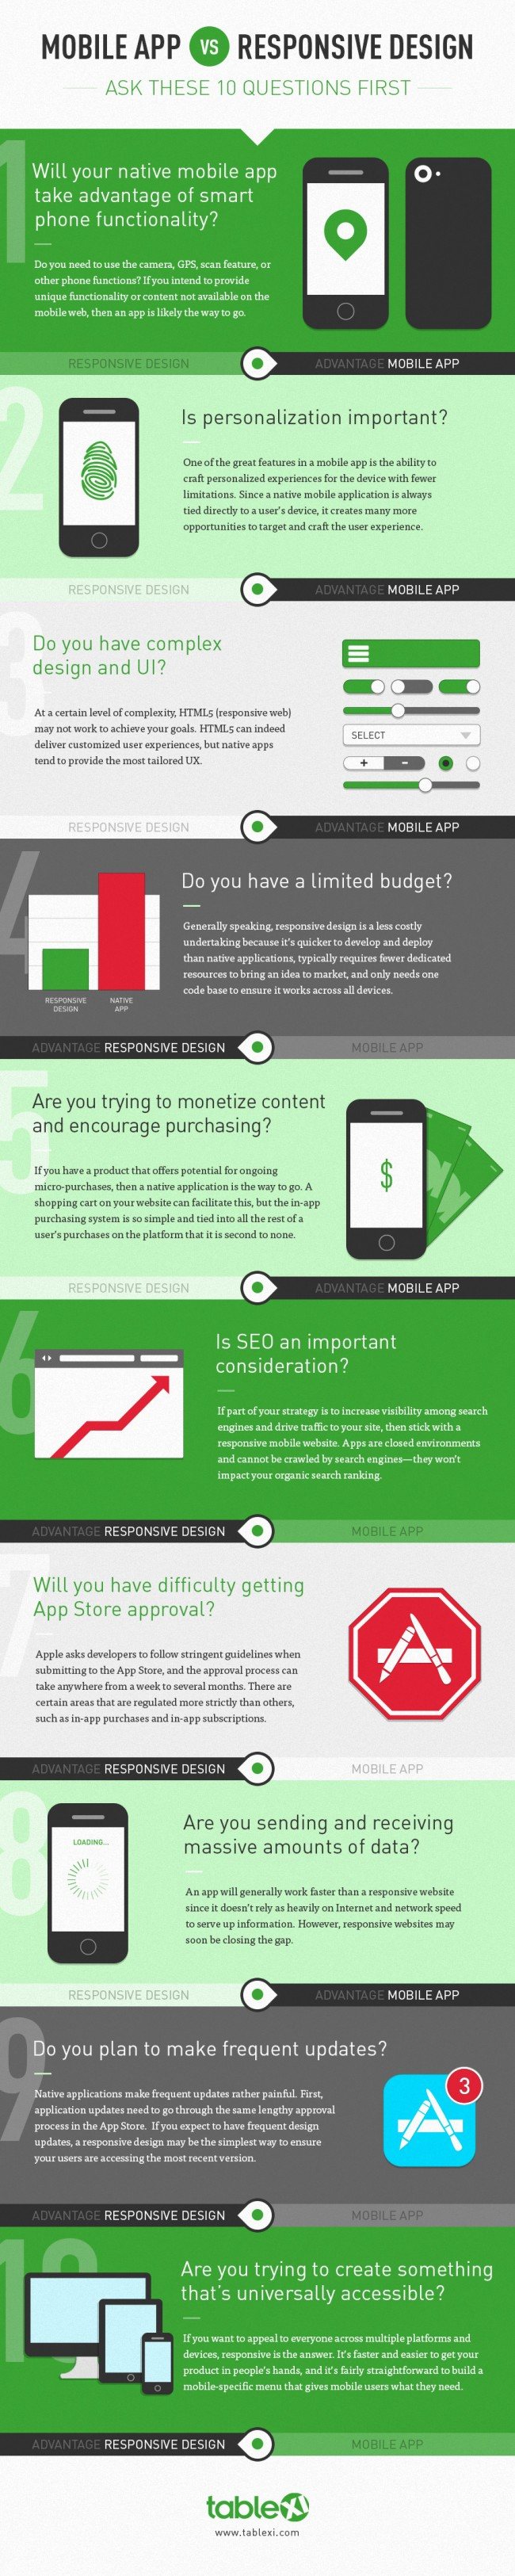 10 things to check before buying Mobile